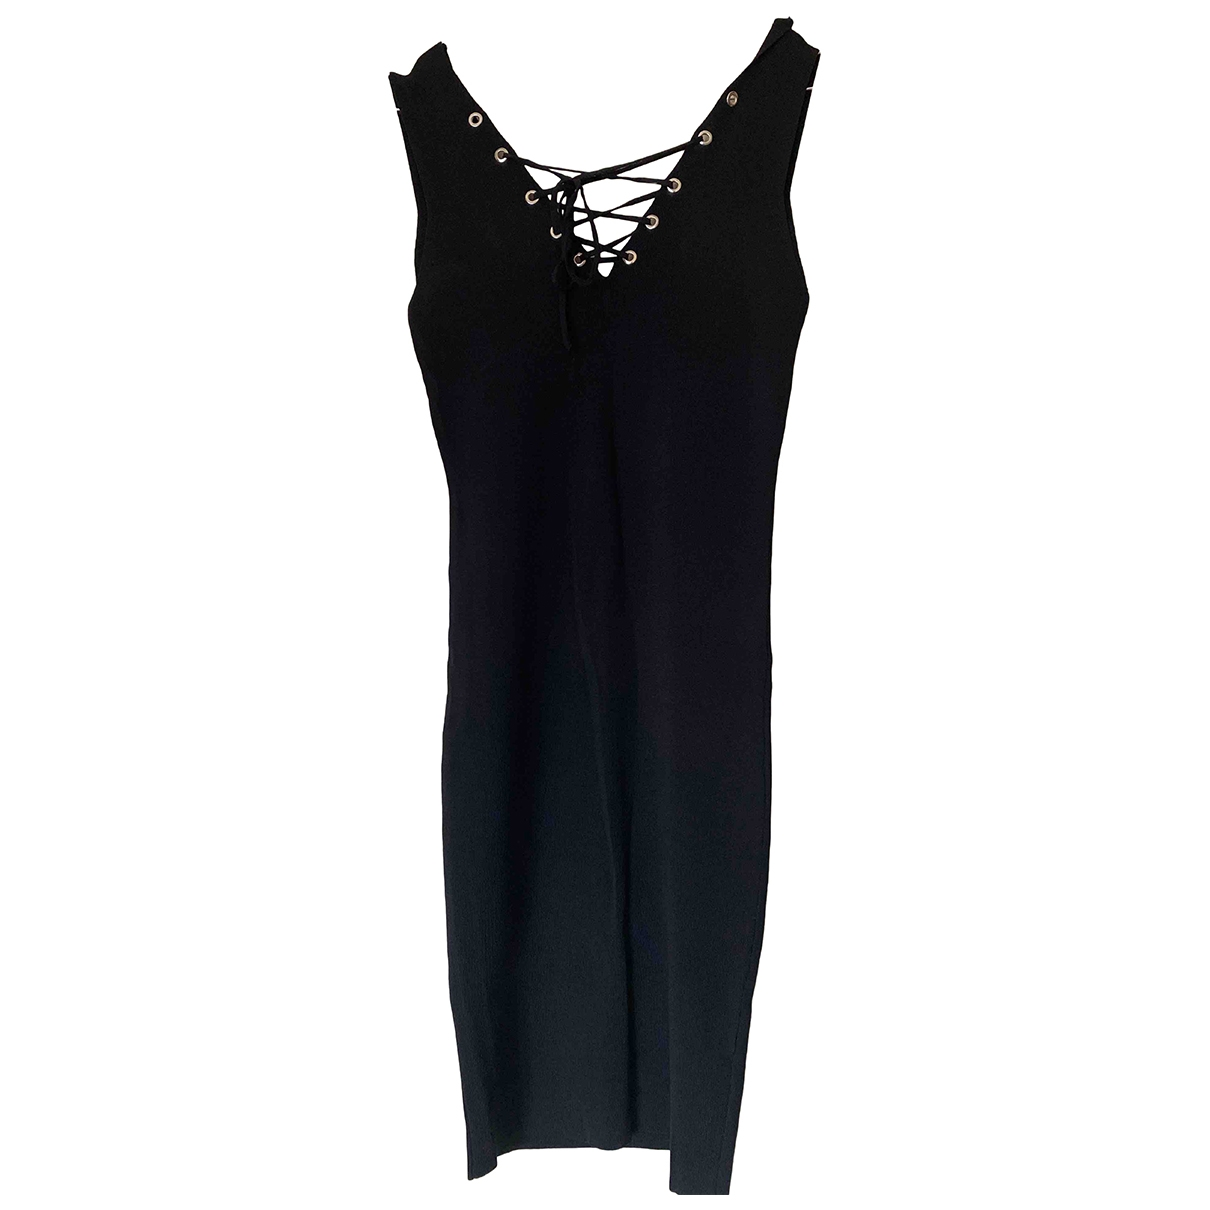 Non Signé / Unsigned \N Black dress for Women One Size UK